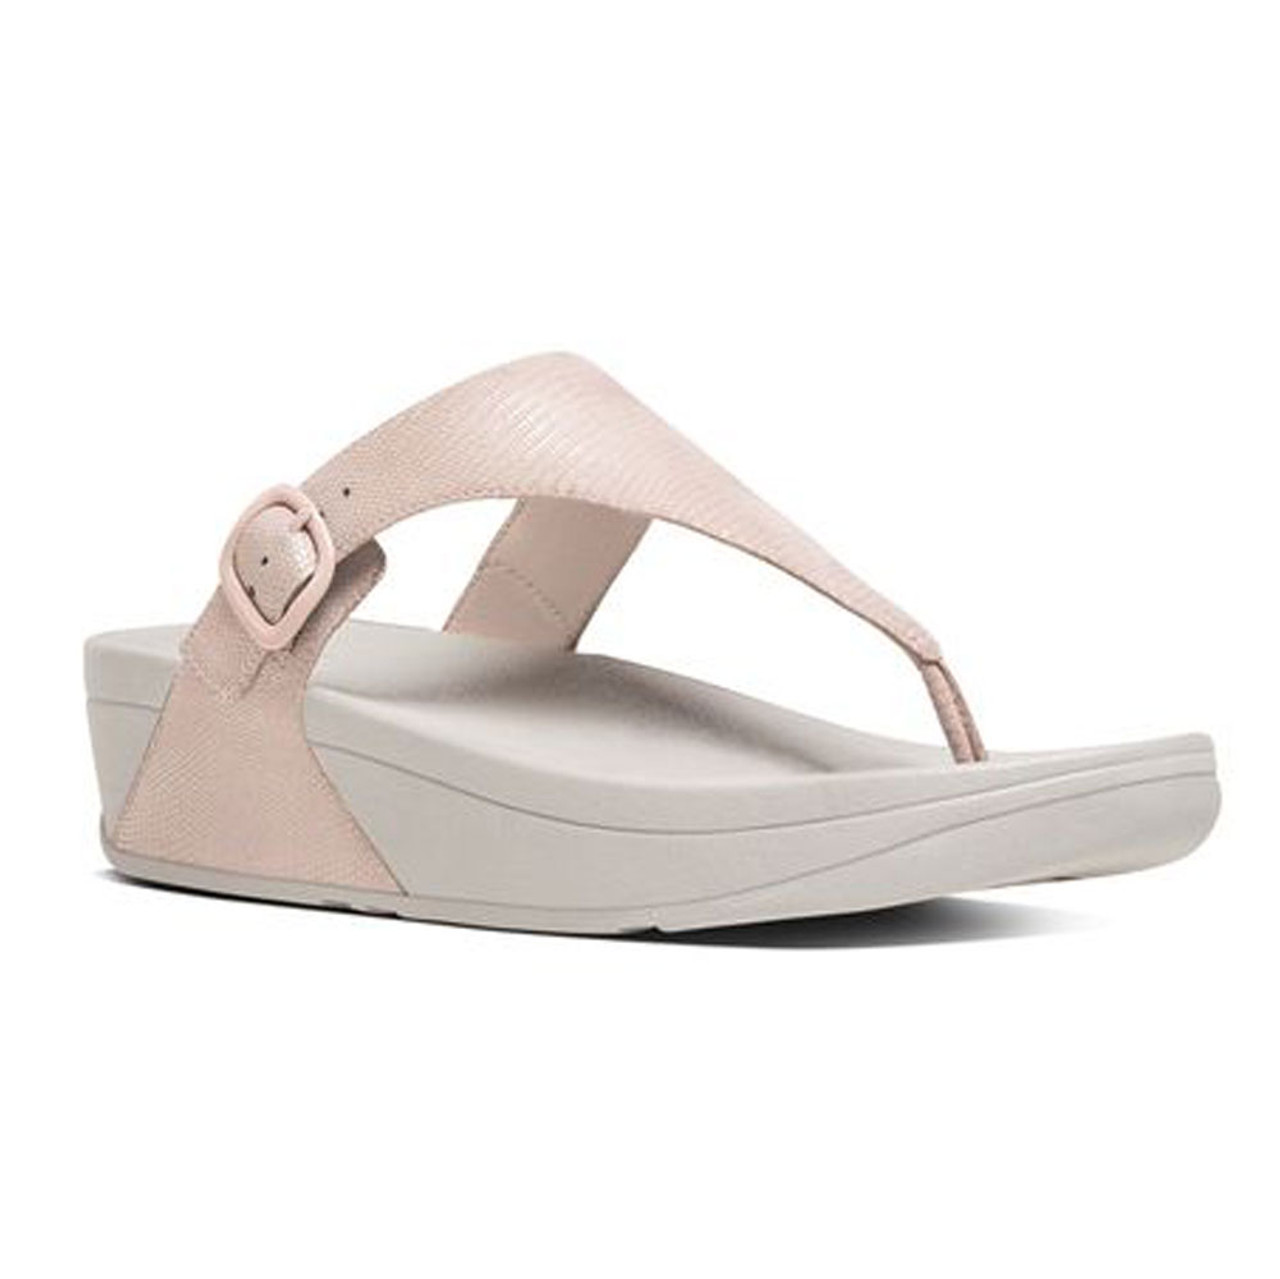 f649f6e64f4727 Fitflop Women s The Skinny Lizard Print Thong Nude Pink - Shop now    Shoolu.com